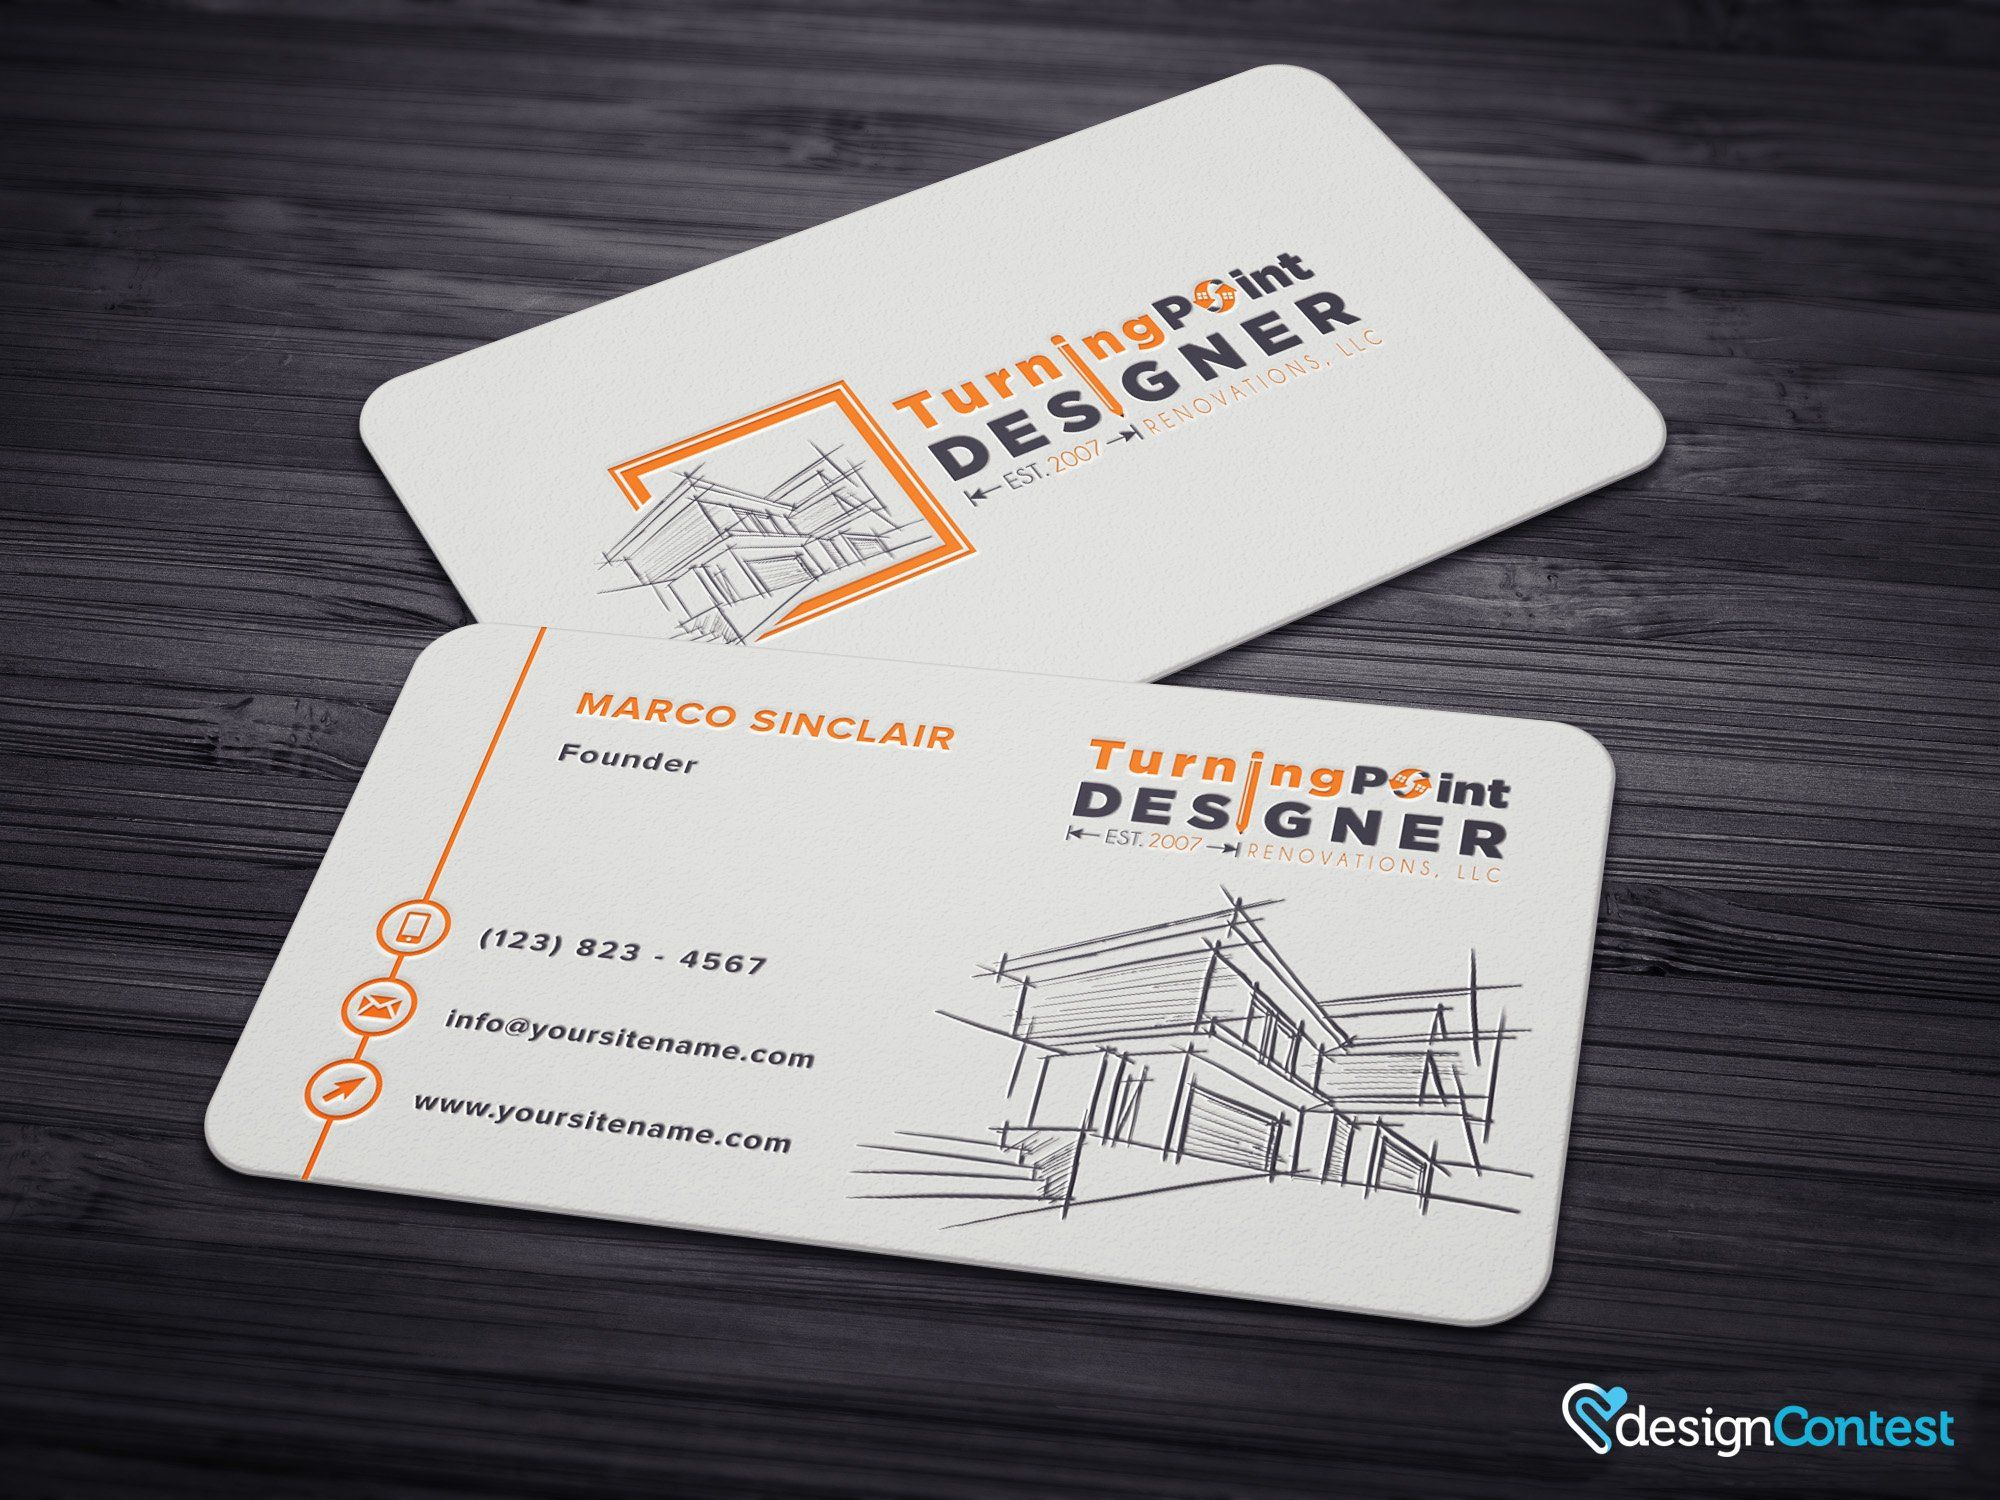 Business Card Design With DesignContest22 Copy